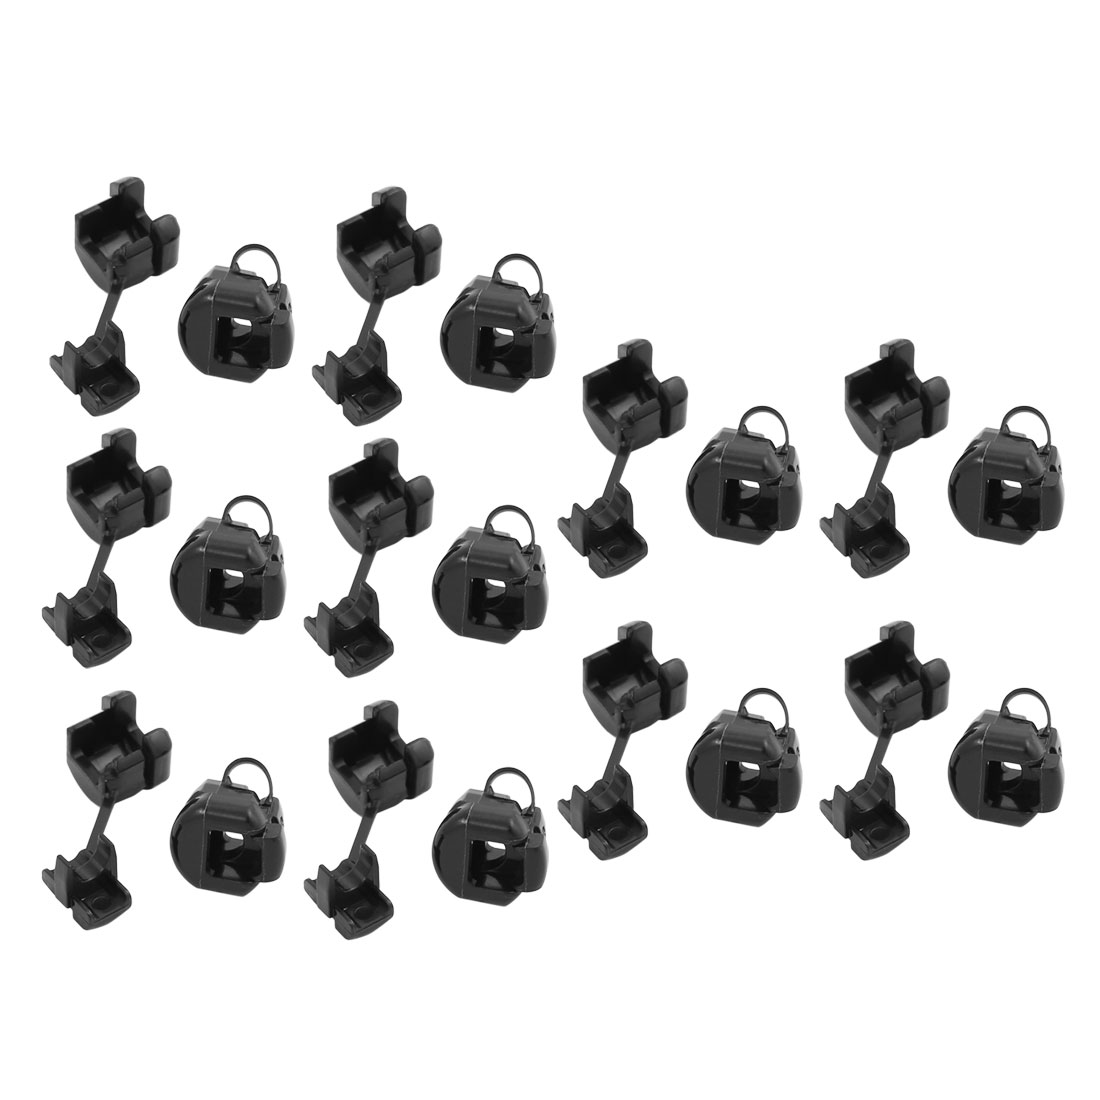 20Pcs 5N-4 Round Cable Wire Strain Relief Bush Grommet 11mm Diameter Black